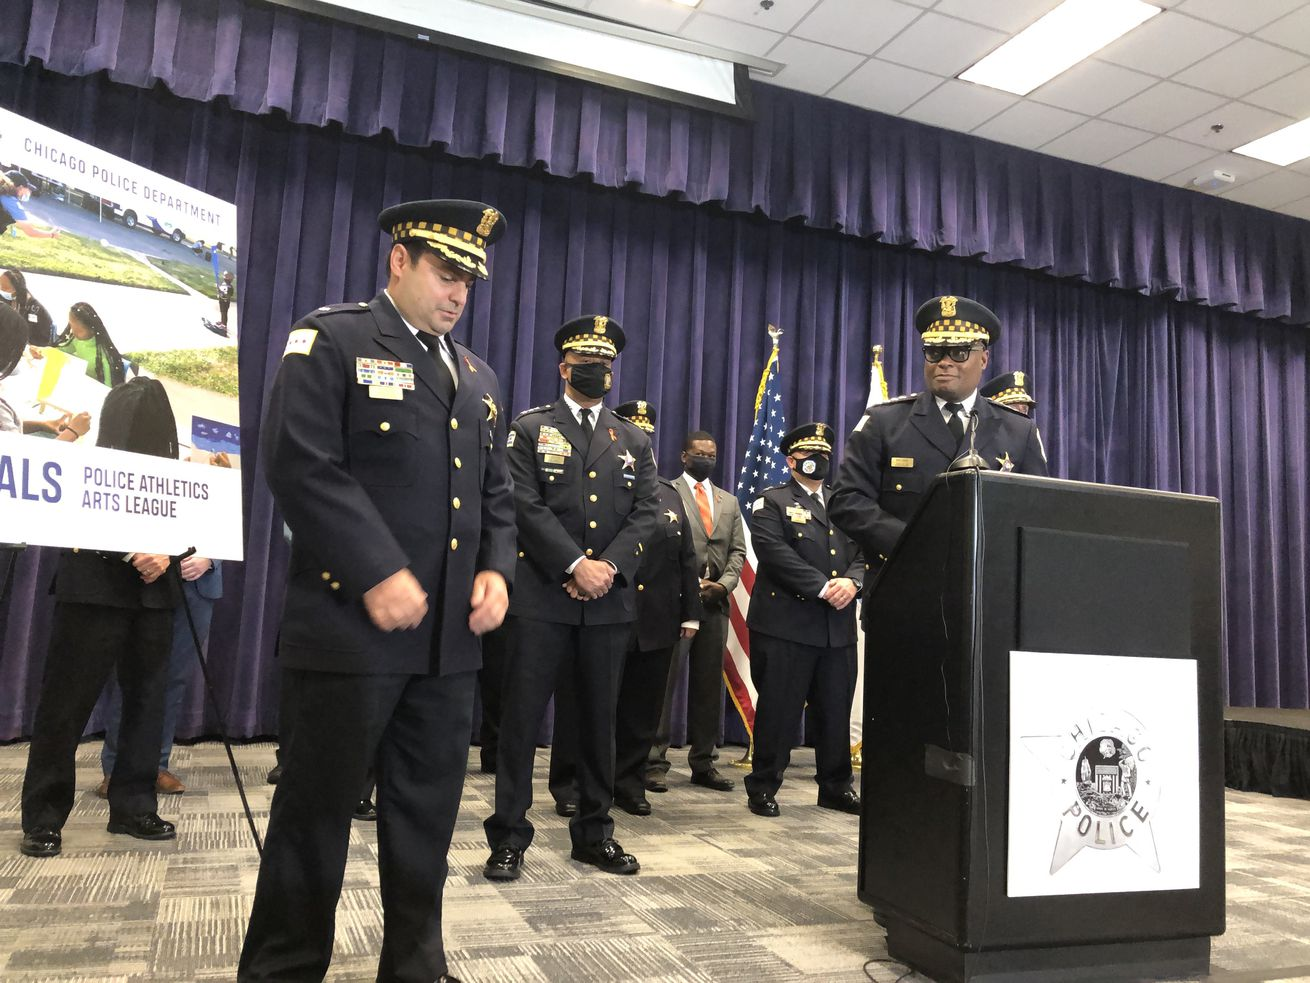 Deputy Chief Angel Novalez chokes up Friday, June 4 at a press conference after Chicago Police Superintendent David Brown made the surprise announcement Novalez would be promoted from commander. Novalez will head up CPD's revamped community policing program.